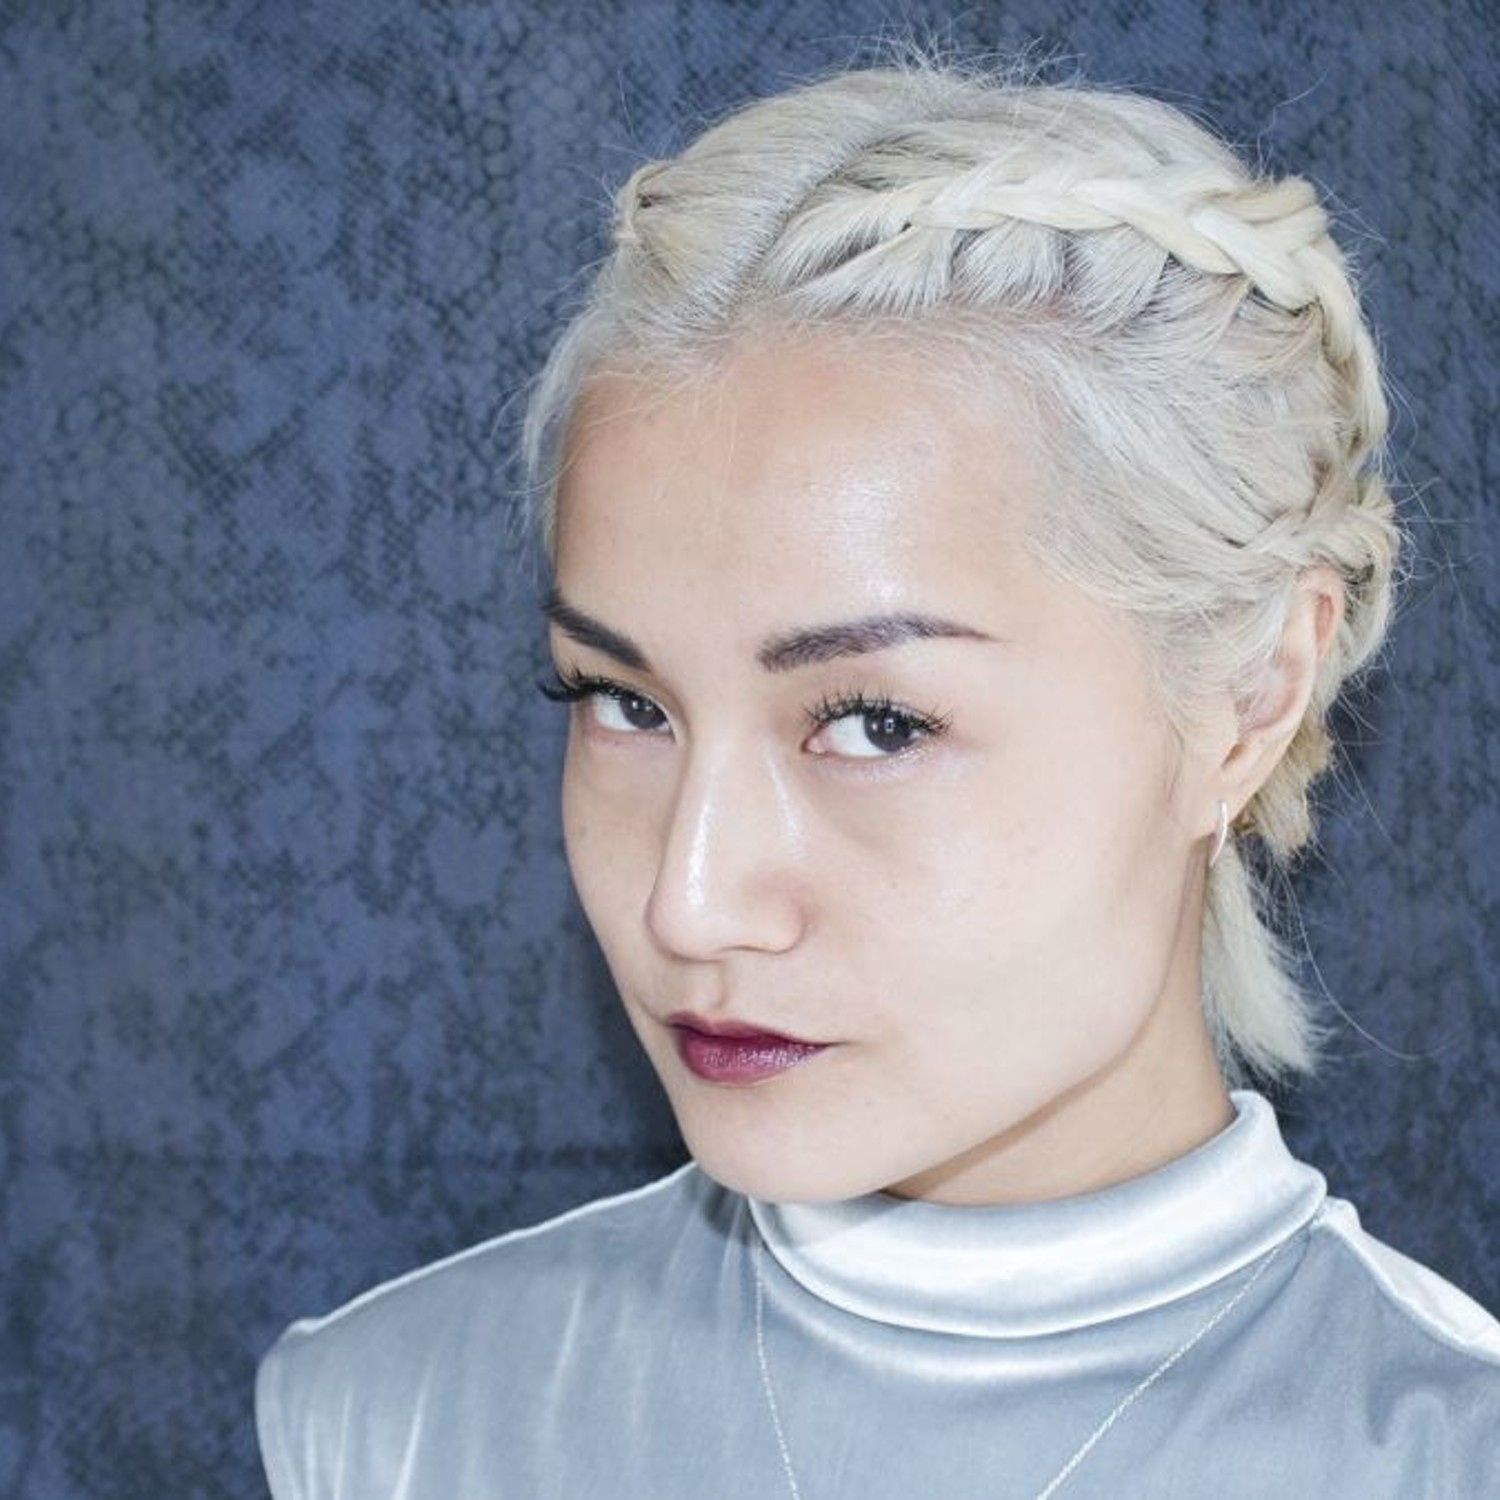 How To Cop Khaleesi Braids With Short Hair | Short hair ...